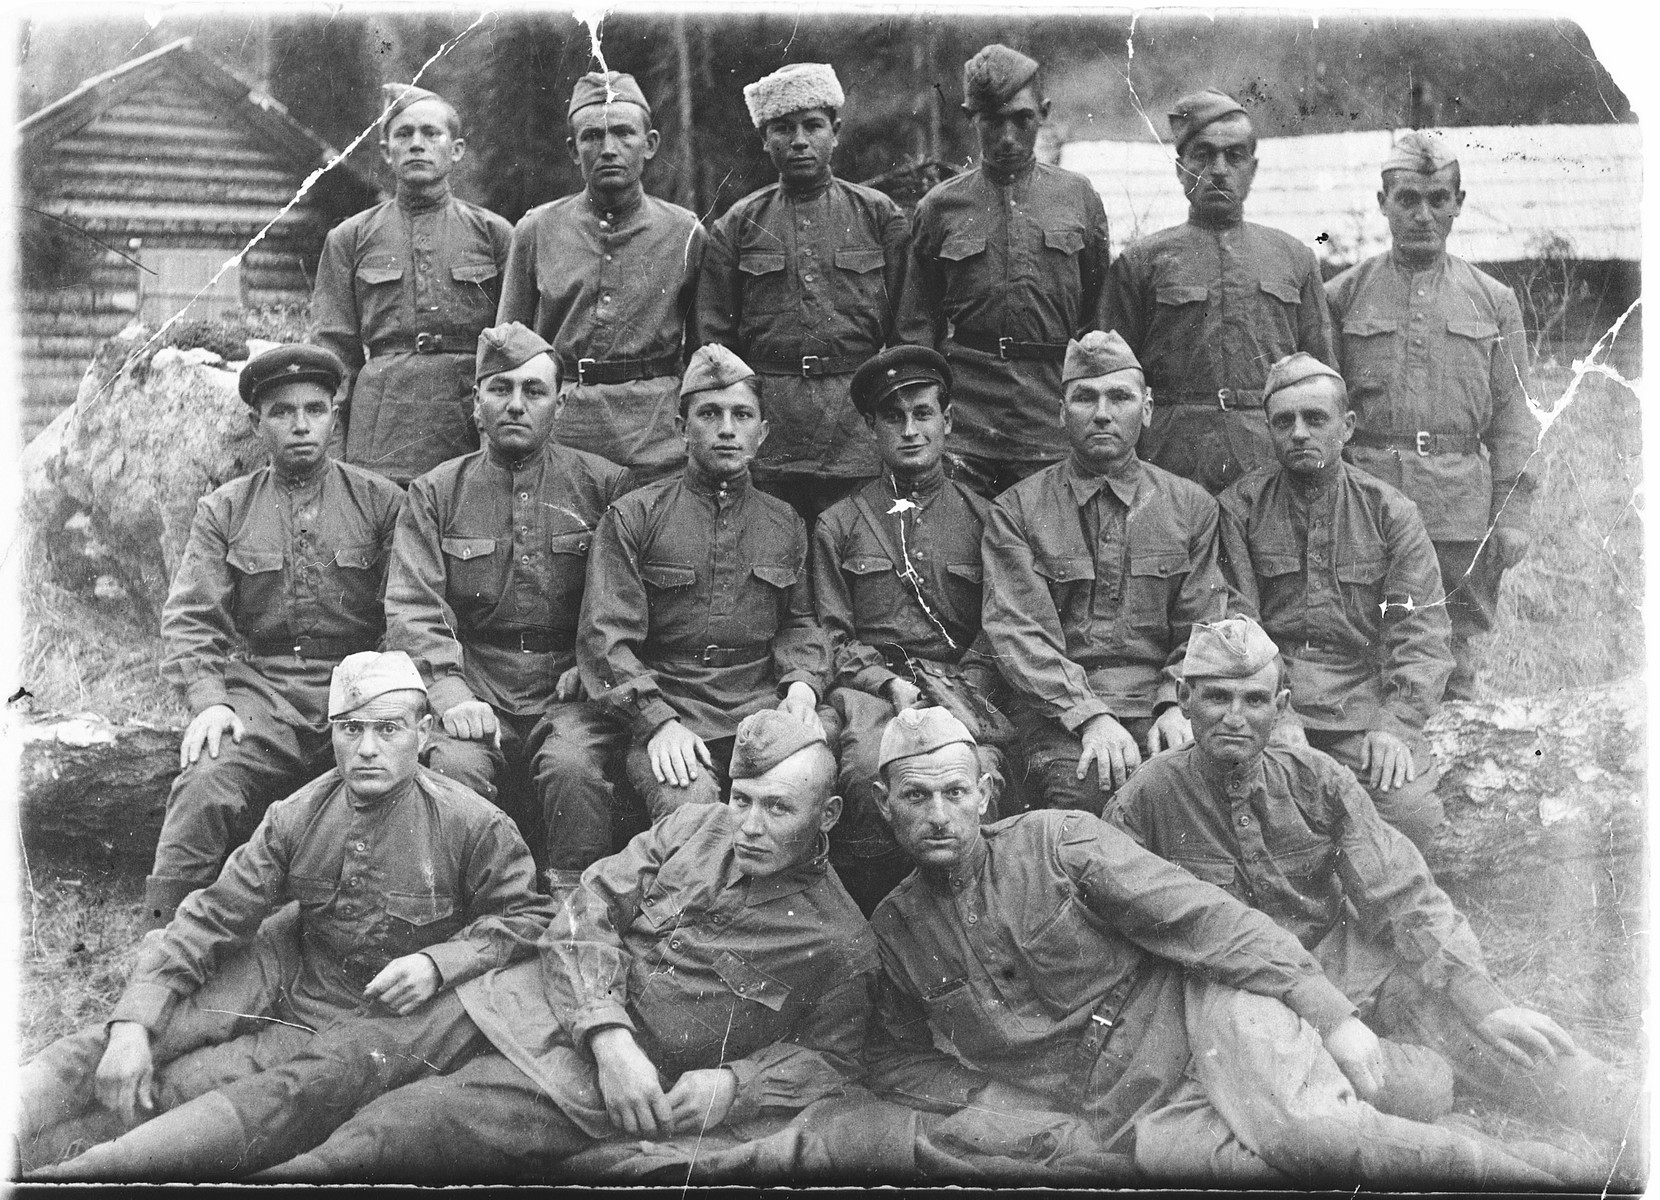 Group portrait of Soviet soldiers.  Among those pictured is Shlomo Rachmil (second row, third from the right).